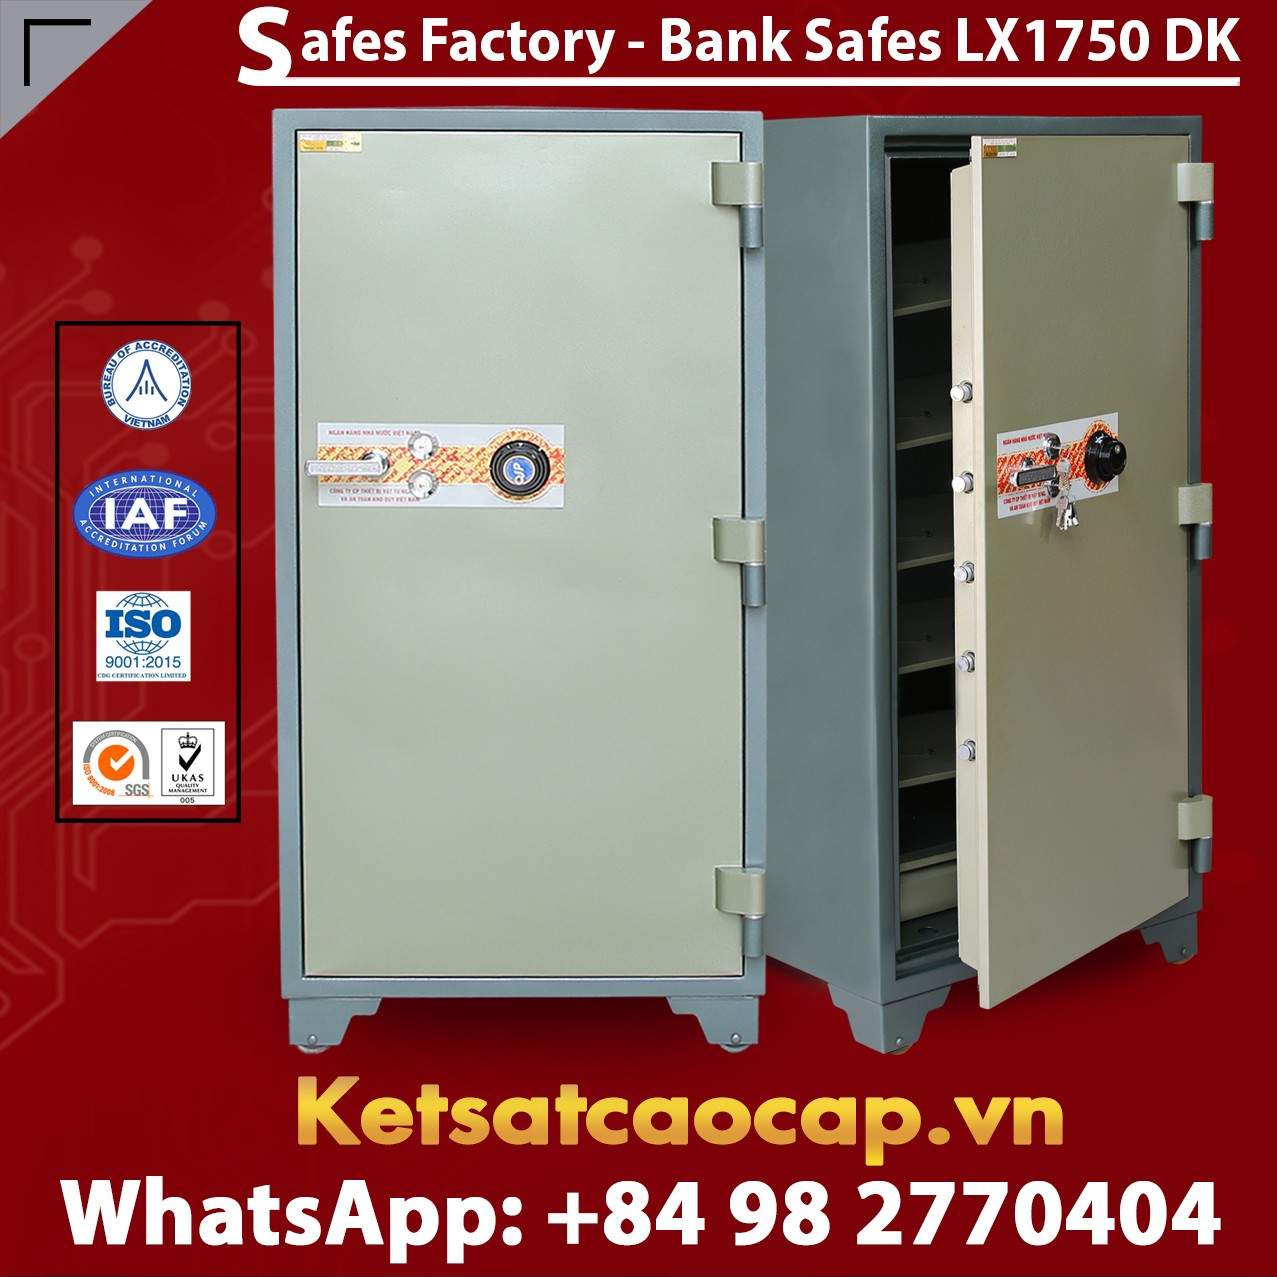 Bank Safe LX1750 DK Custom Bank Safes Fireproof Safe Security Safe Box